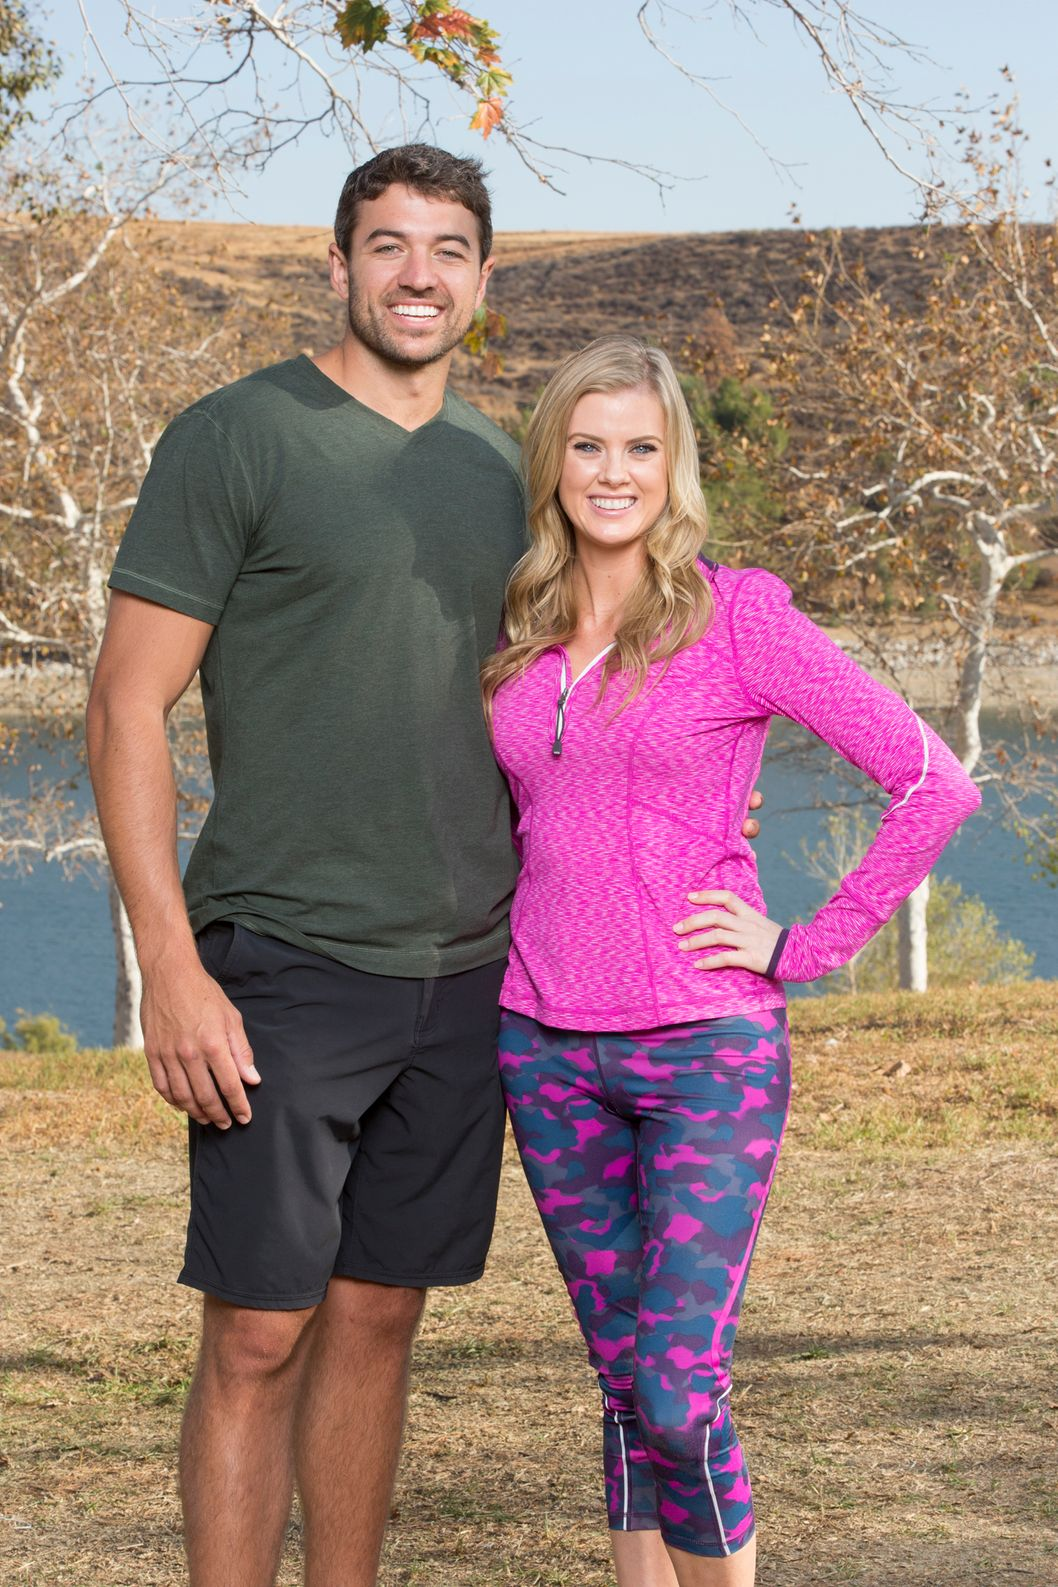 upset for no reason yahoo dating: laura and tyler the amazing race are they dating